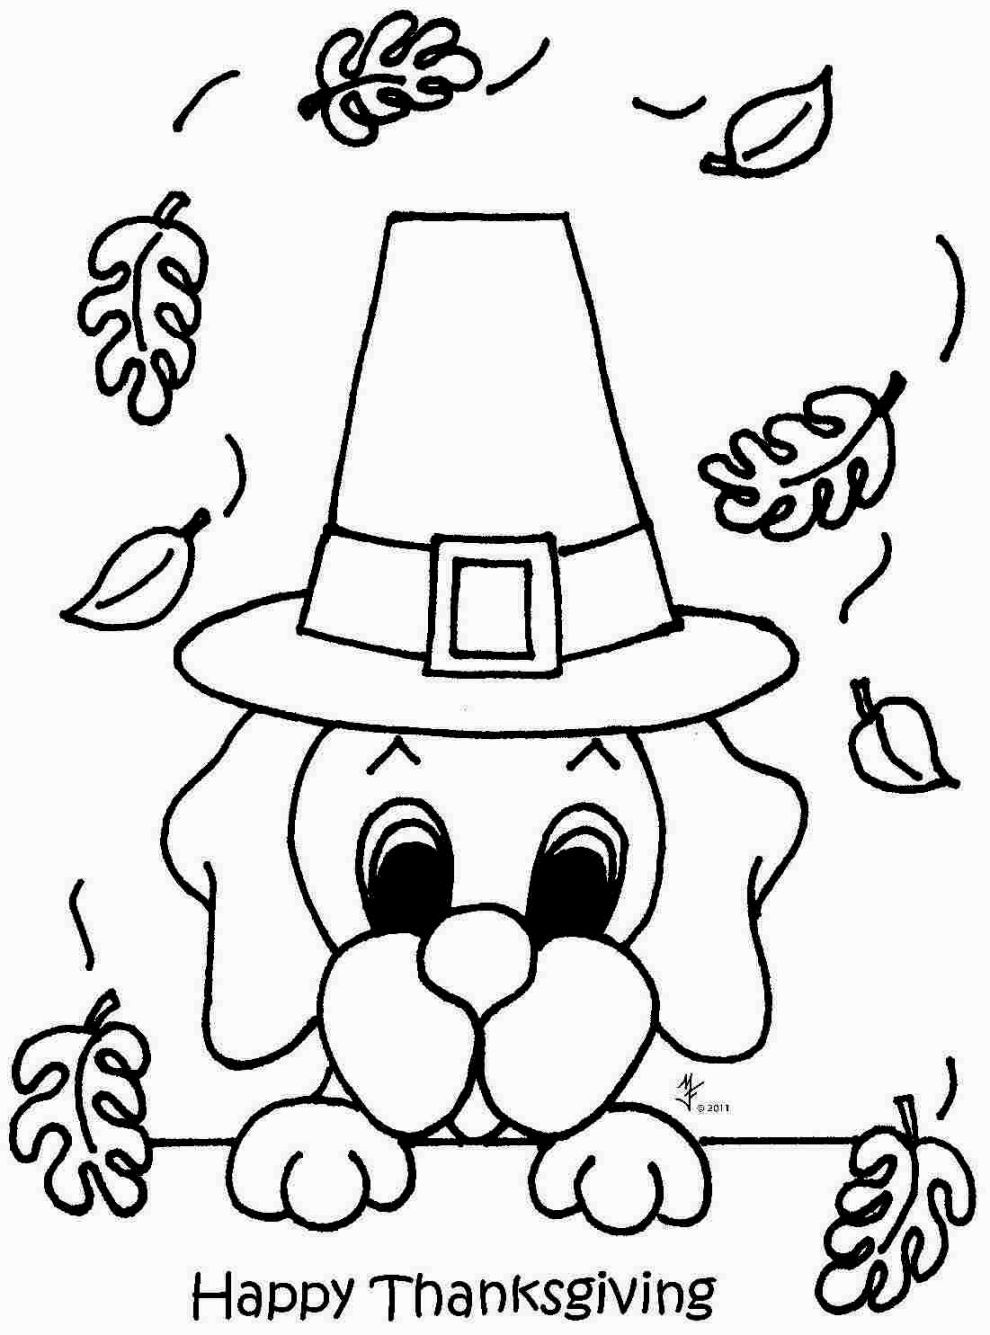 Coloring Pages Thanksgiving | Coloring Pages | Pinterest